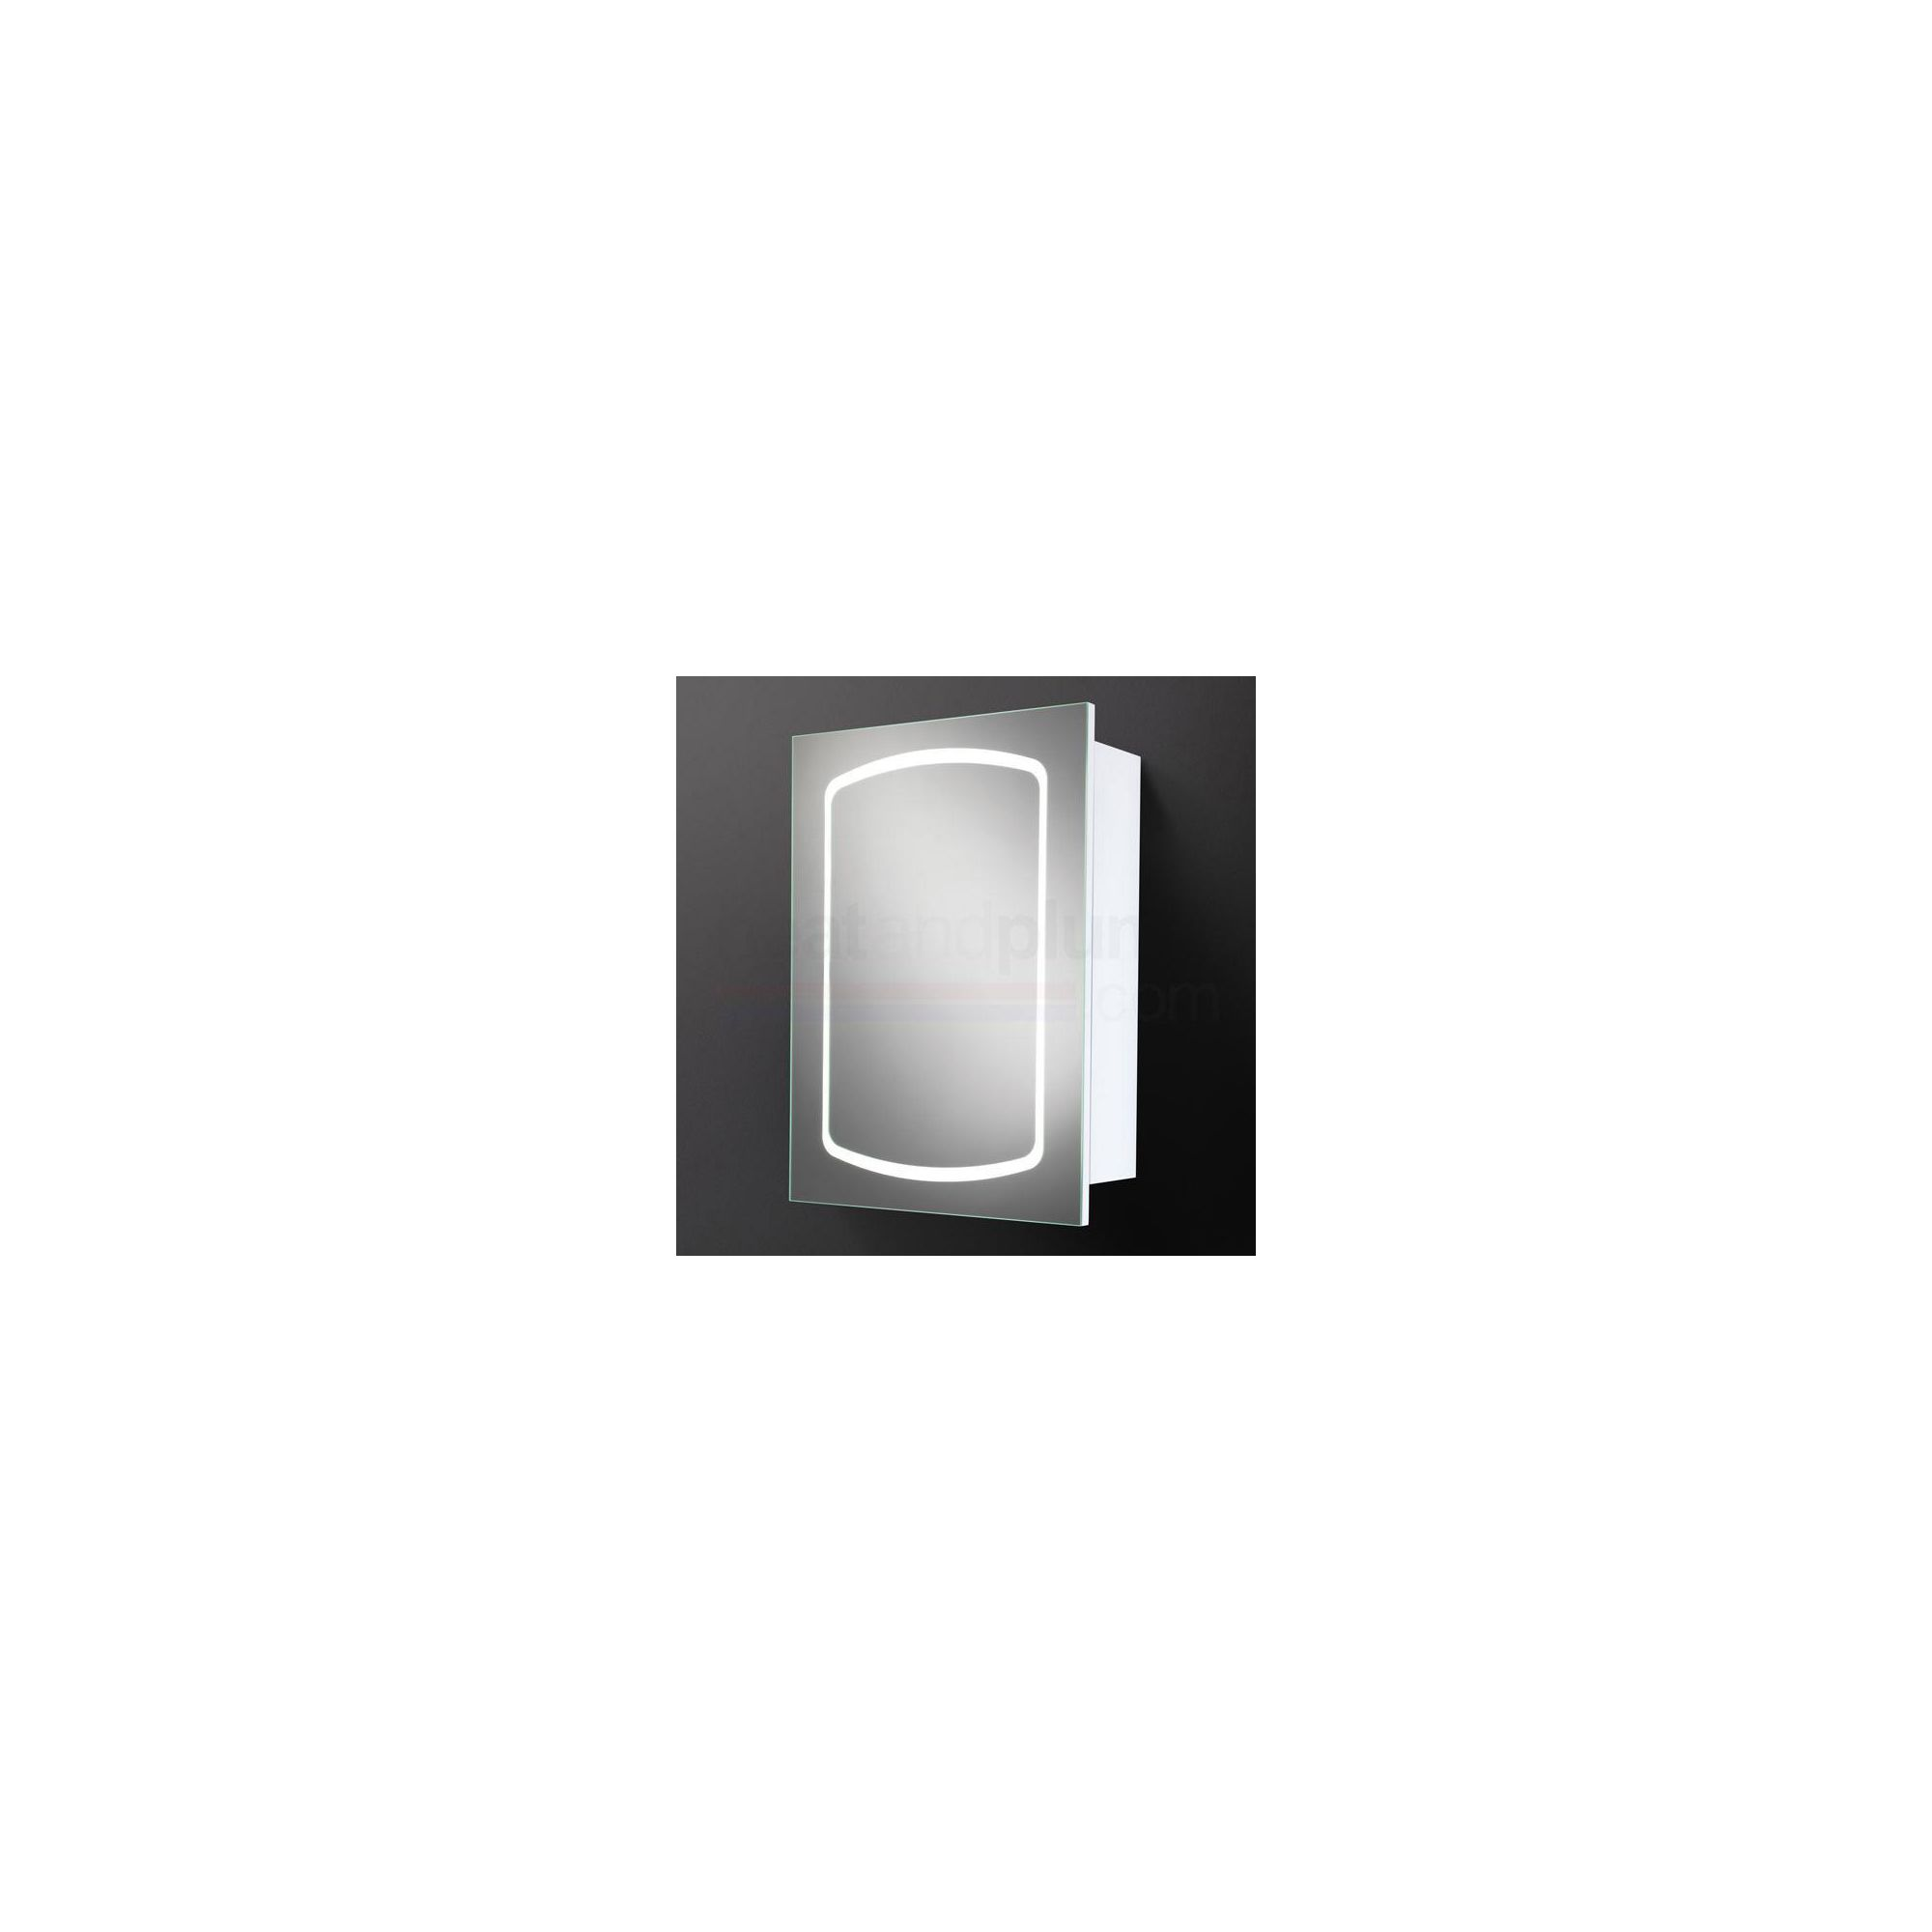 HiB Dakota LED Illuminated Bathroom Cabinet 680mm High x 500mm Wide x 145mm Deep